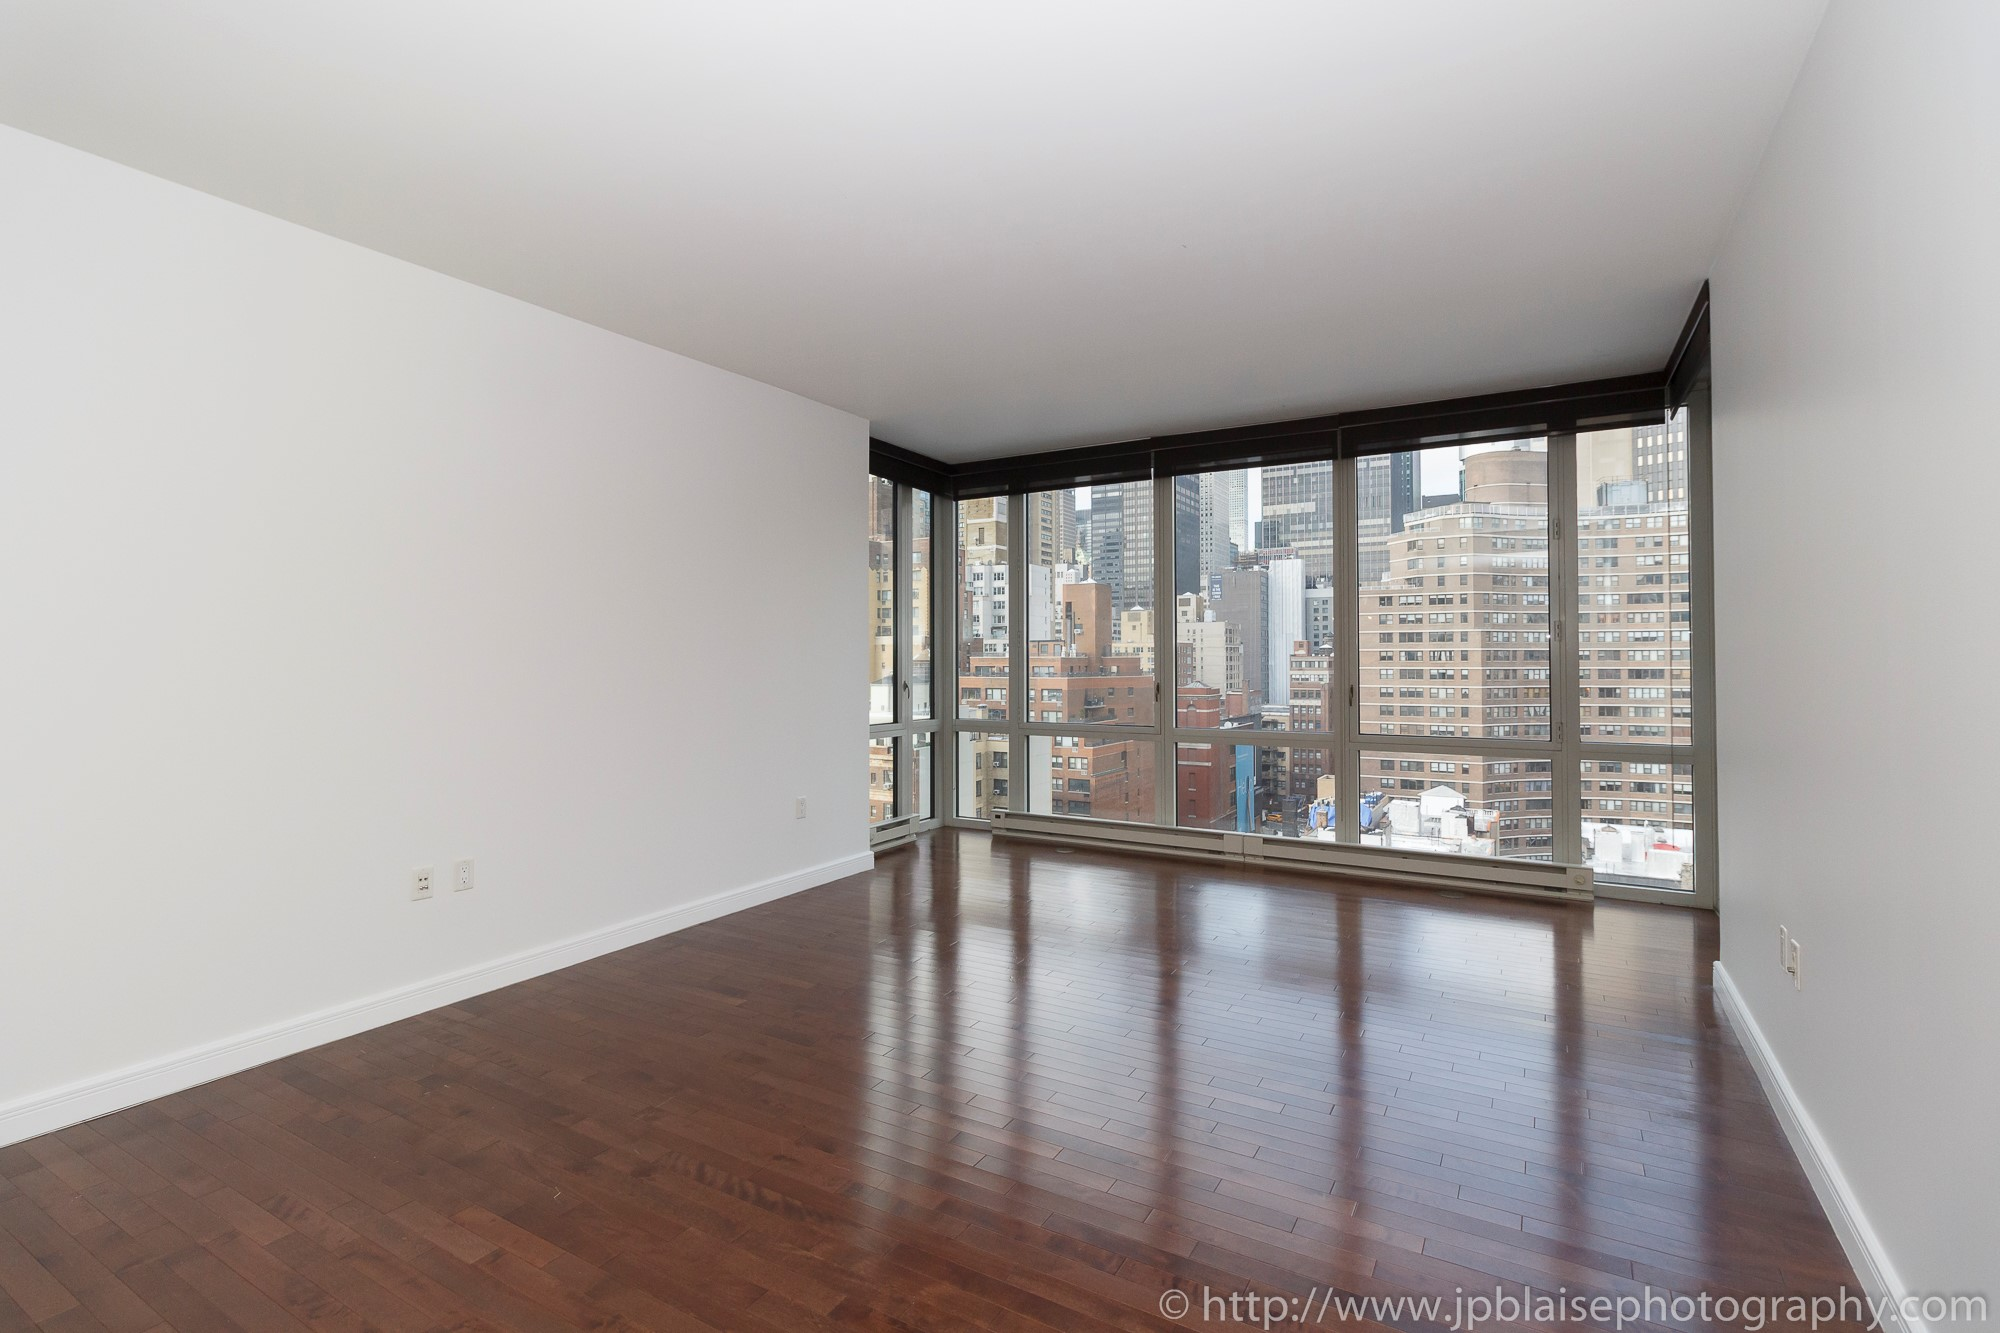 Apartment Photographer In New York Latest Photoshoot One Bedroom Condo Unit In Midtown East